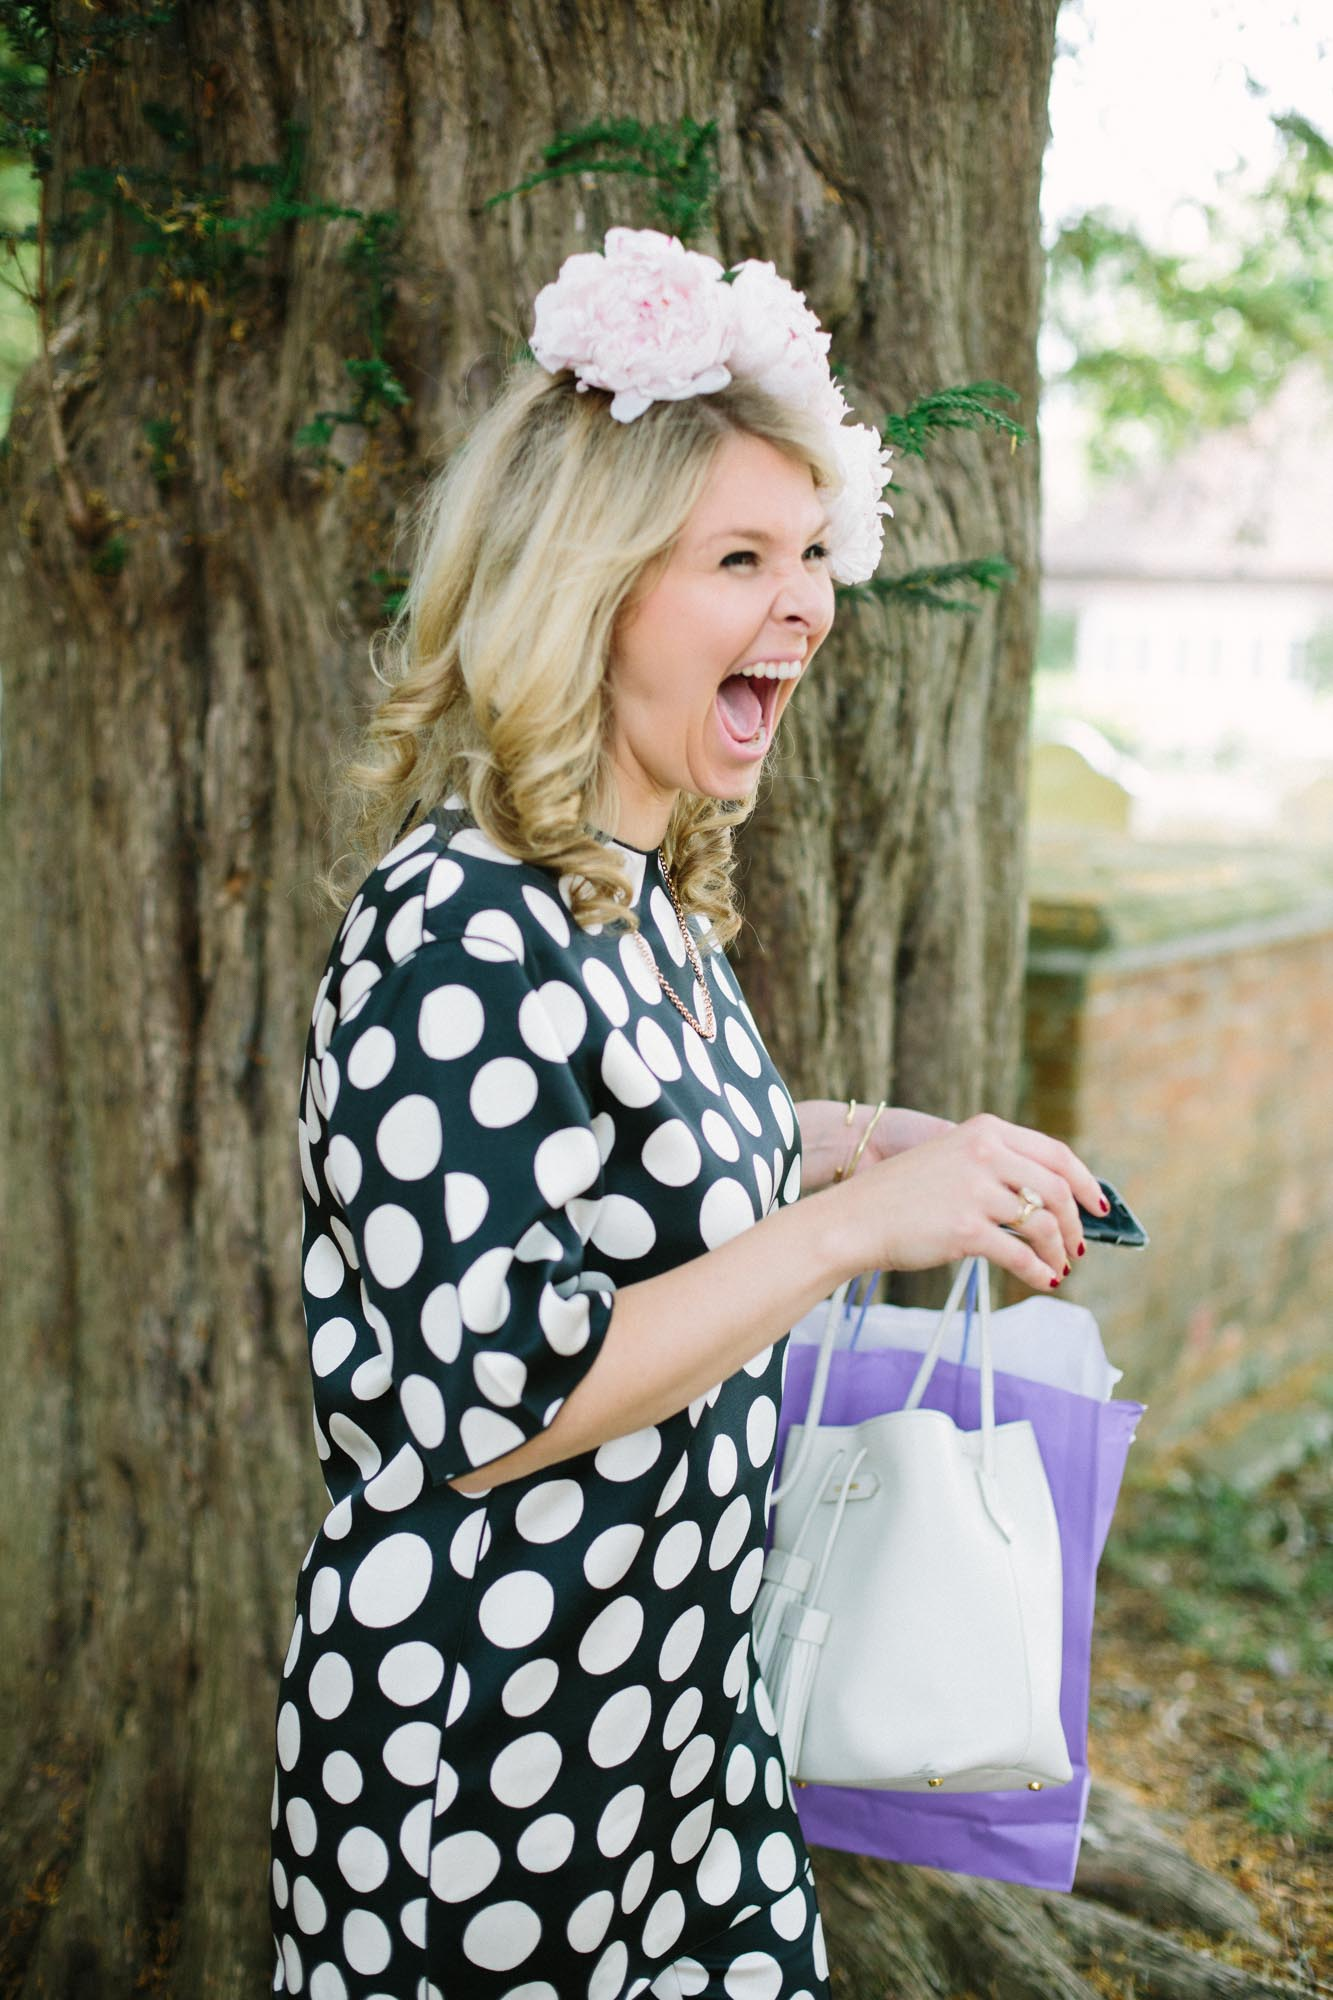 Wedding guest laughing outside church